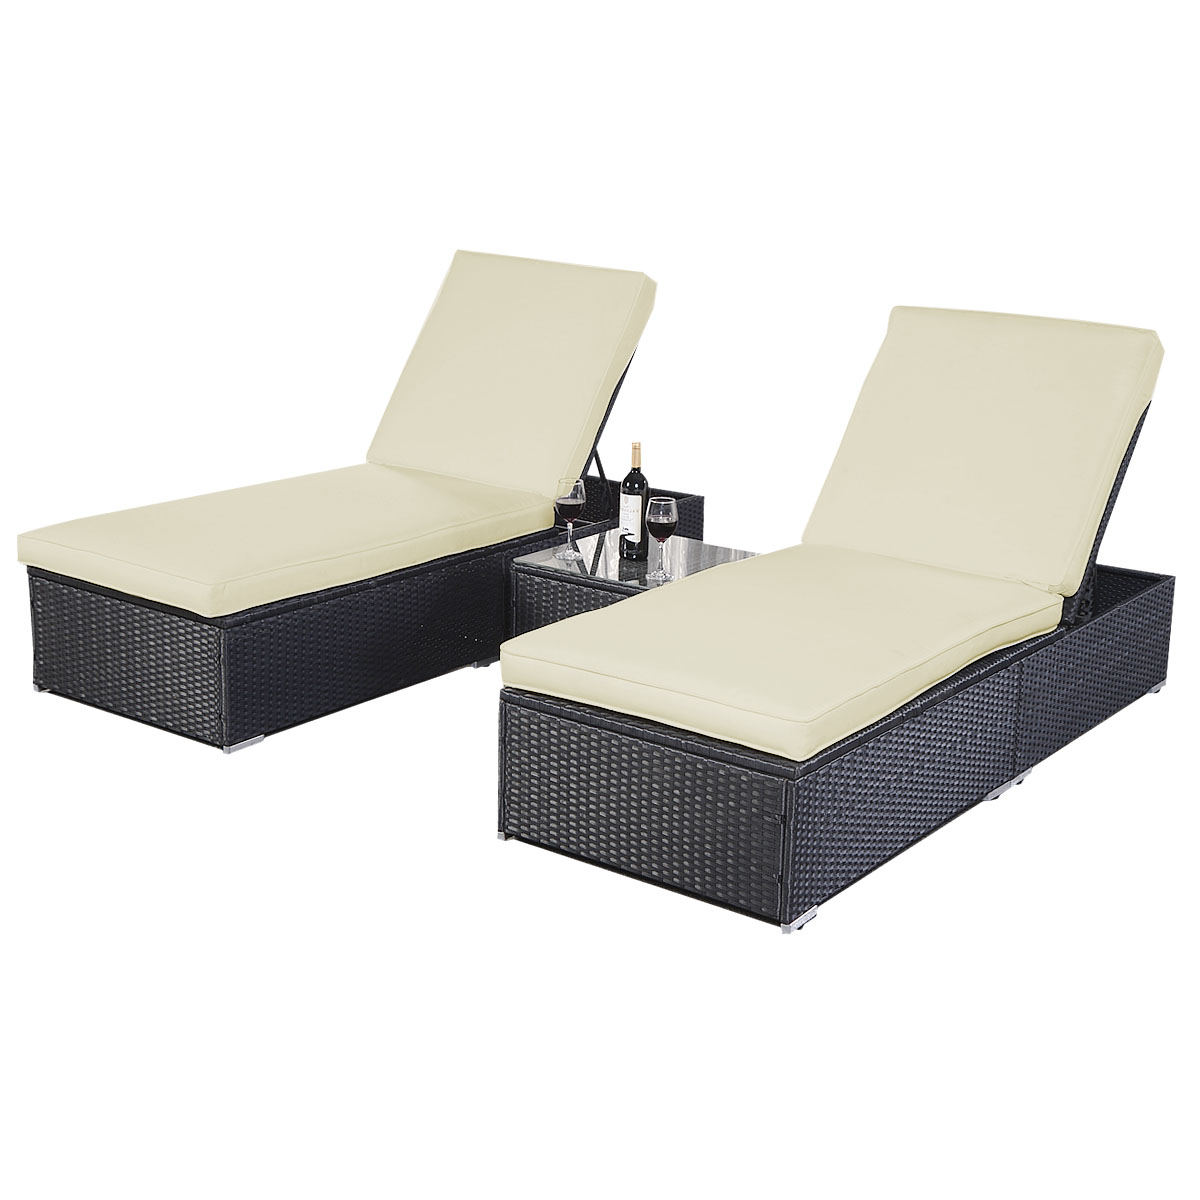 Costway 3 Piece Wicker Rattan Chaise Lounge Chair Set Patio Steel